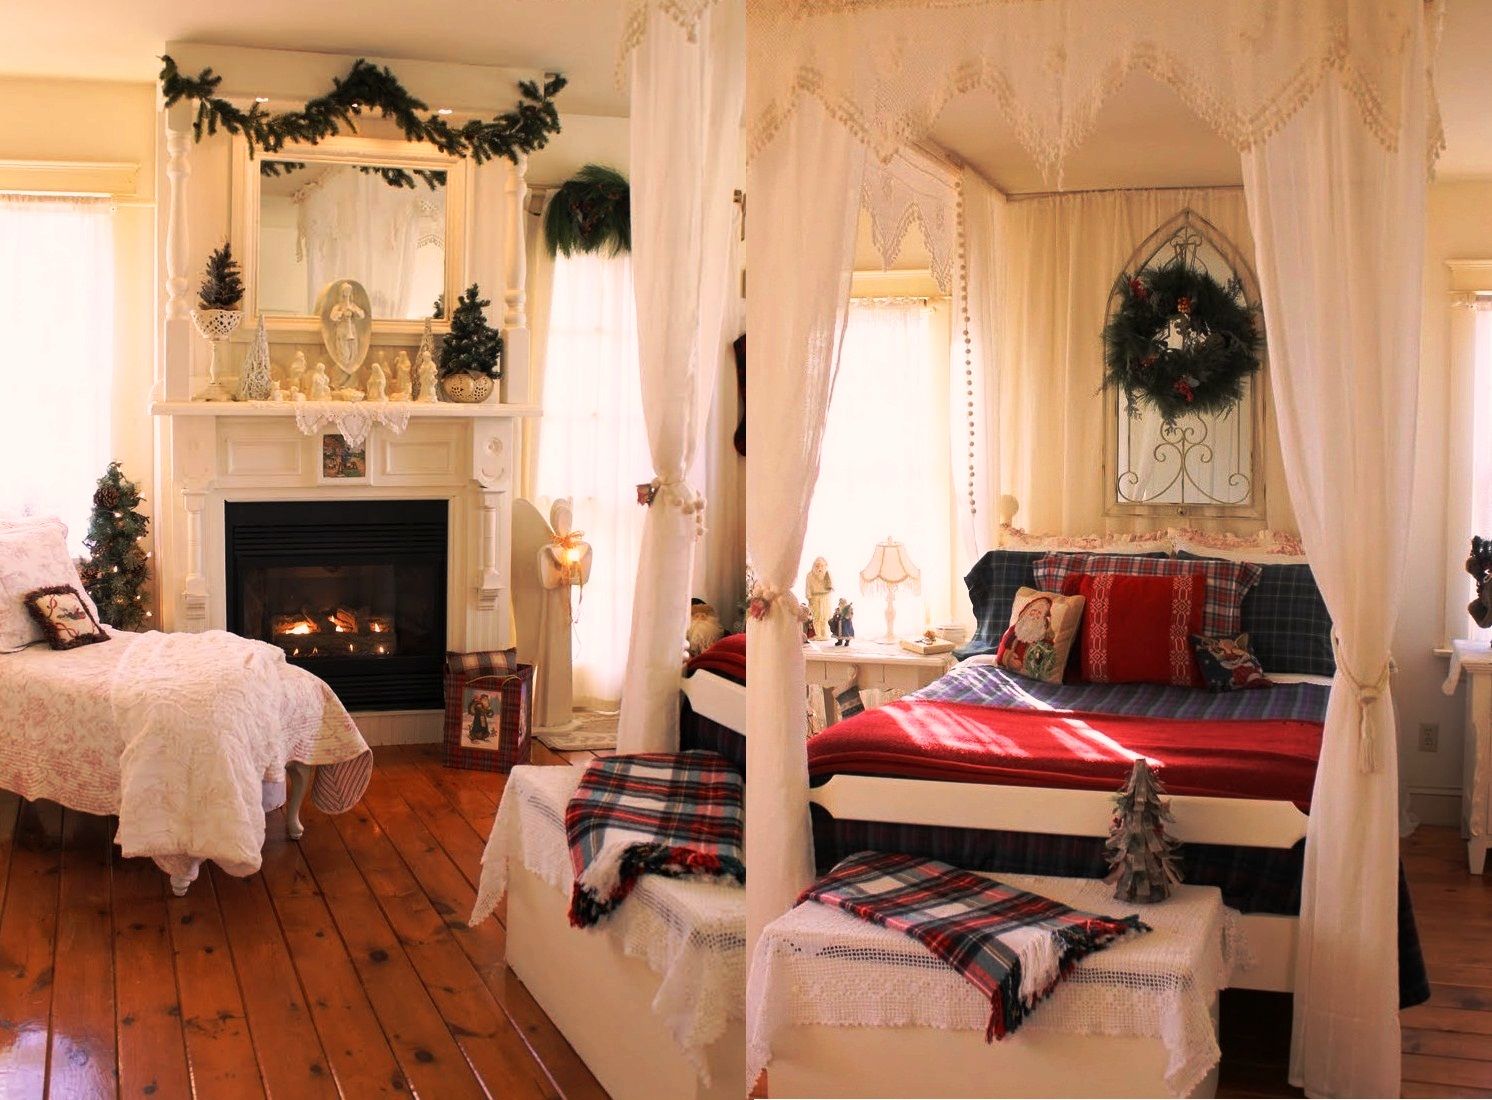 30 christmas bedroom decorations ideas On bedroom ornaments ideas